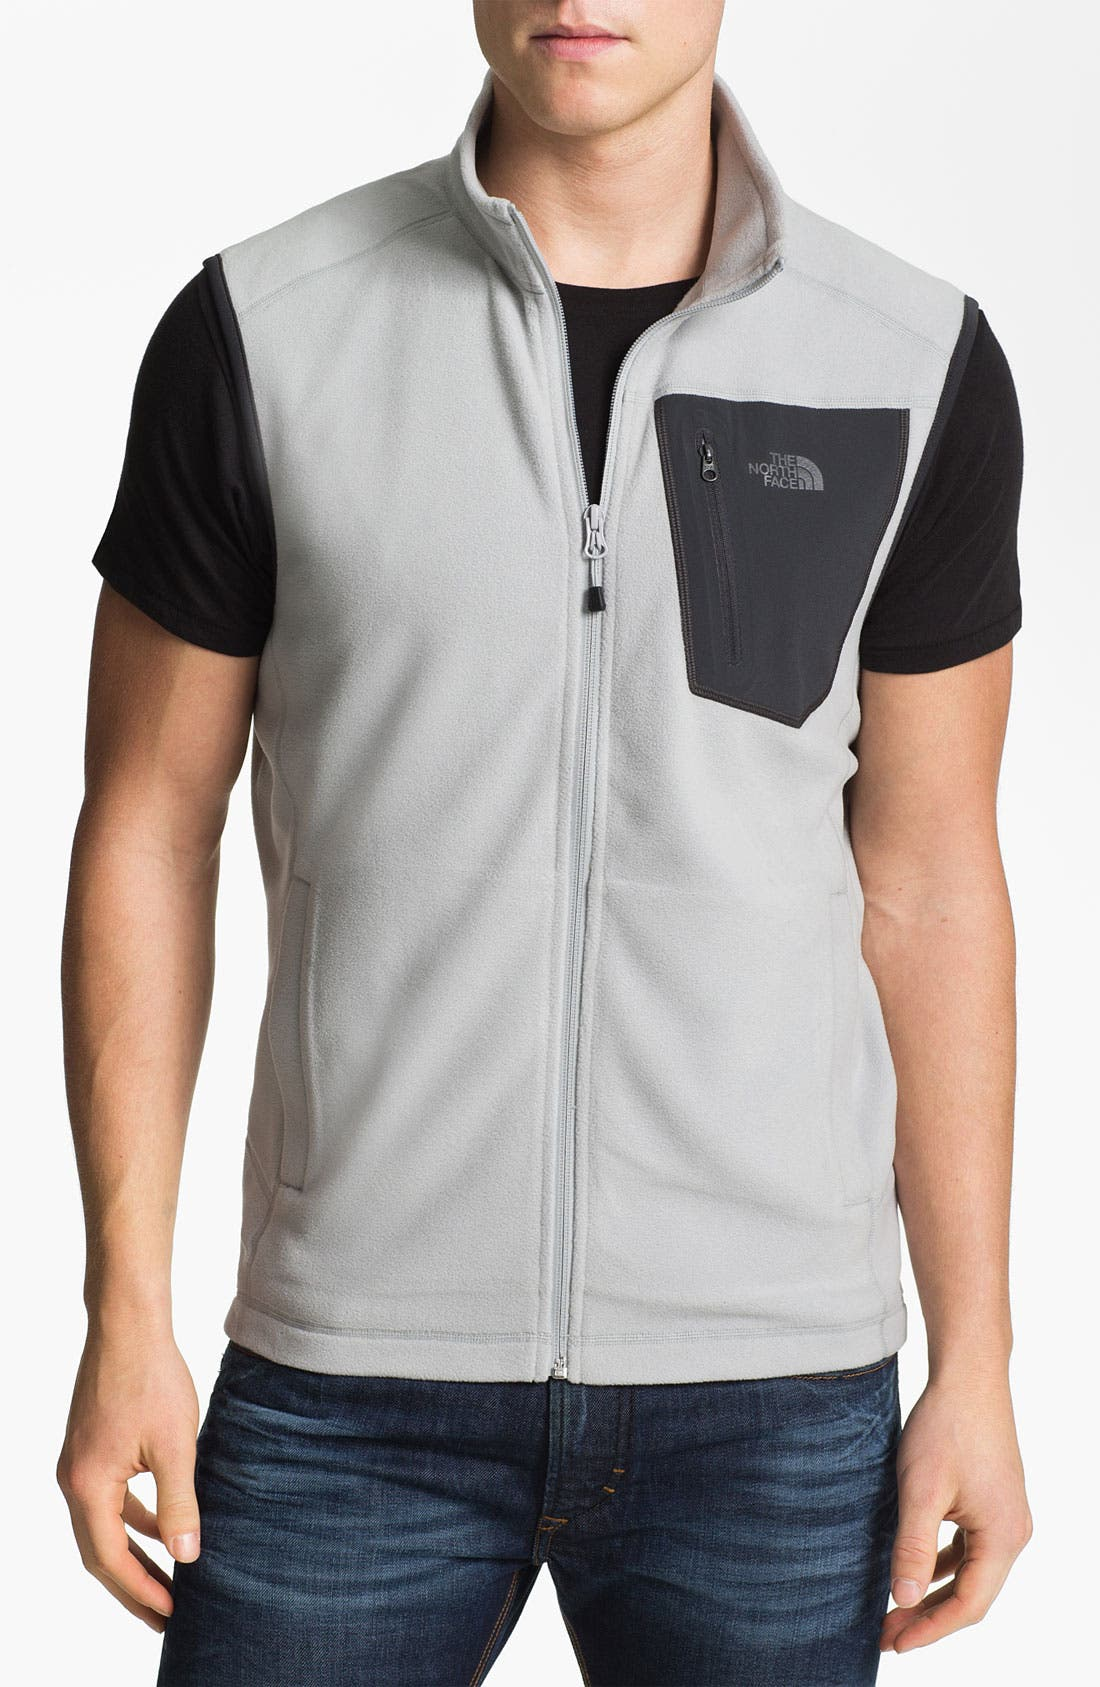 Main Image - The North Face 'TKA 100 Trinity Alps' Fleece Vest